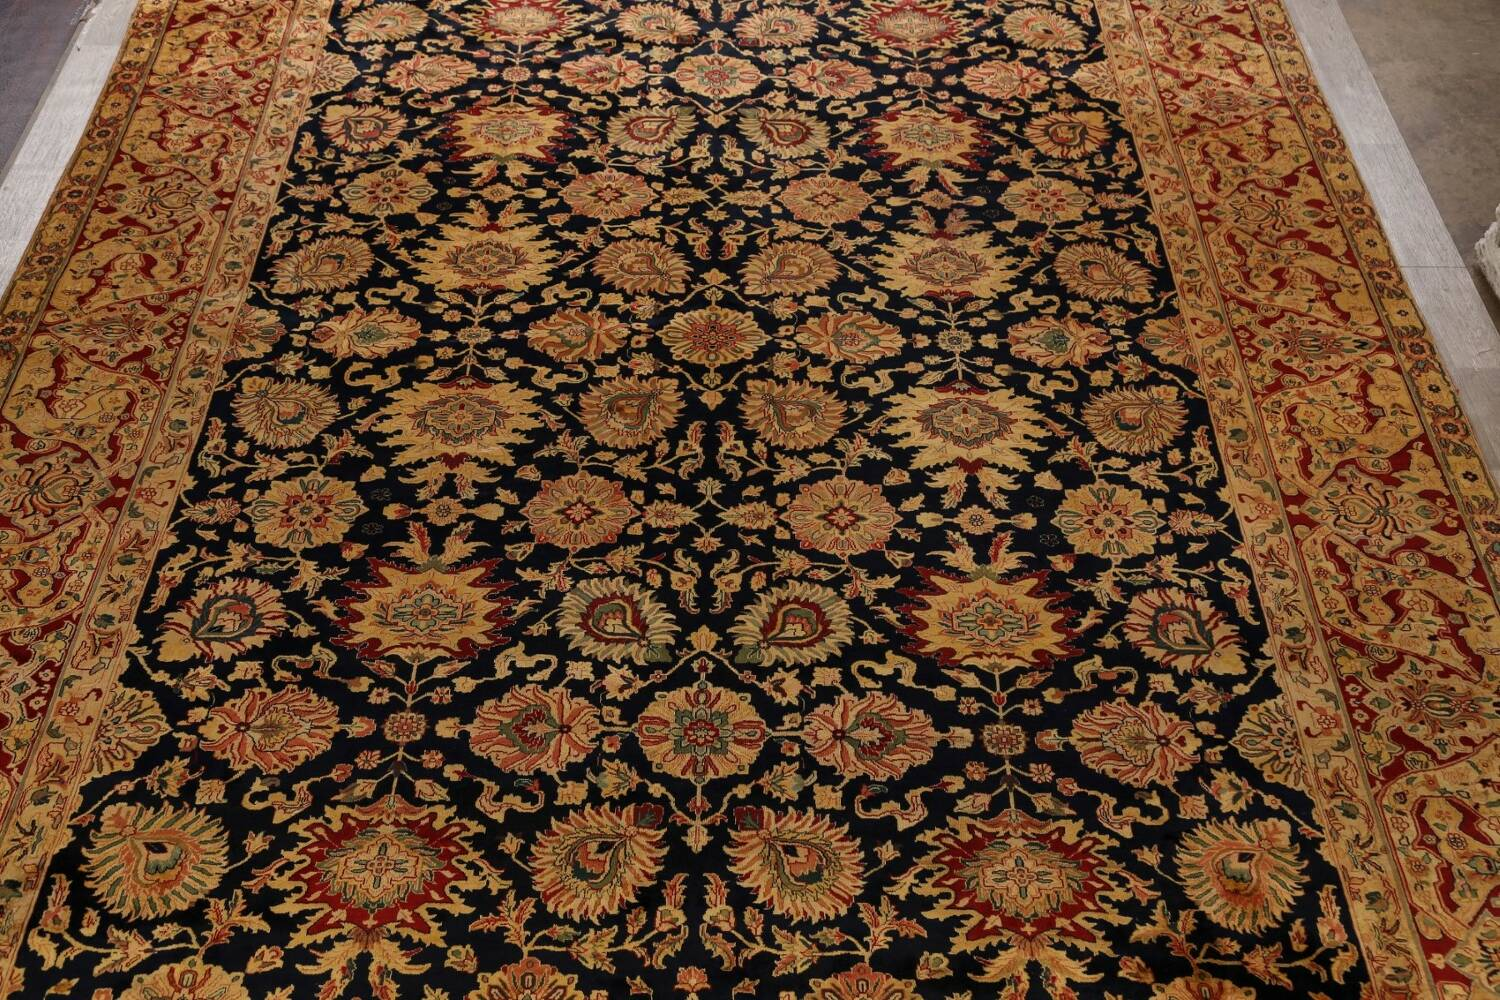 All-Over Floral Agra Oriental Area Rug 13x17 Large image 3